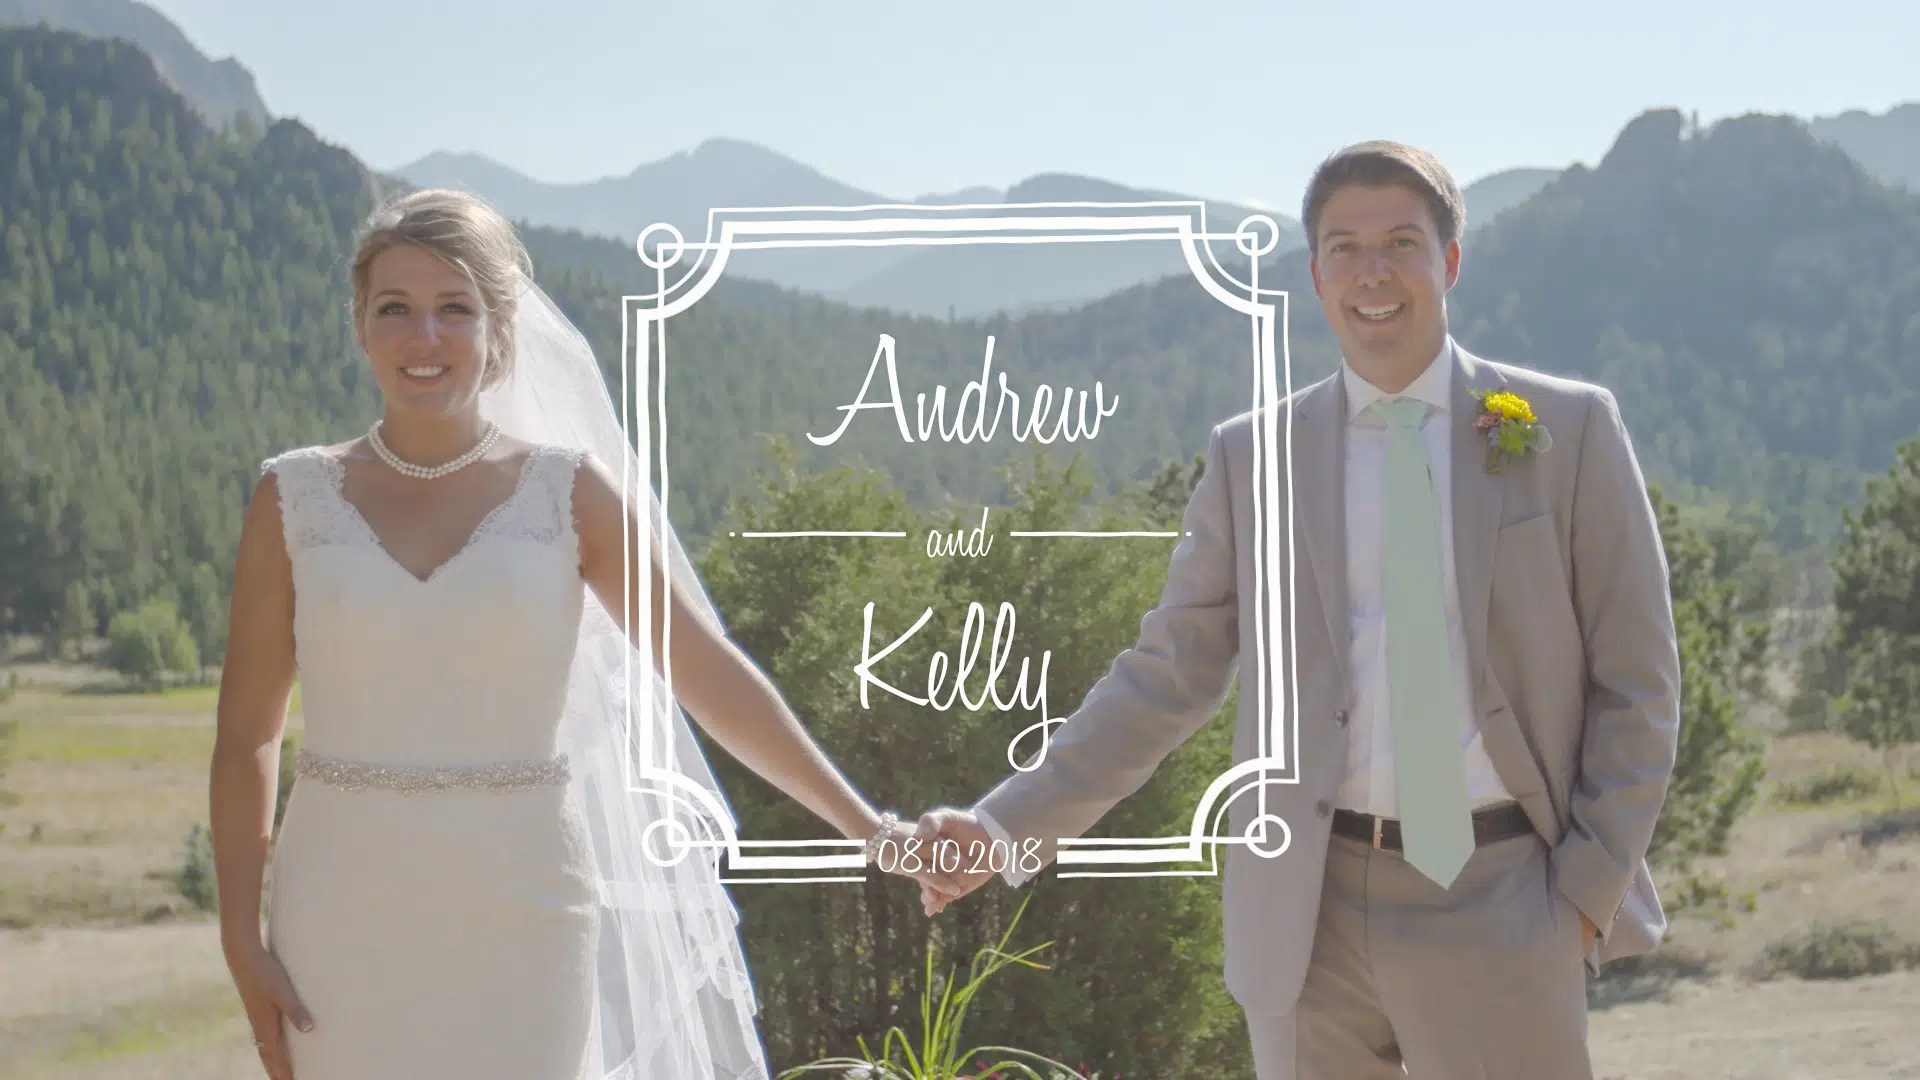 Andrew & Kelly Wedding Highlights Video in Estes Park, CO